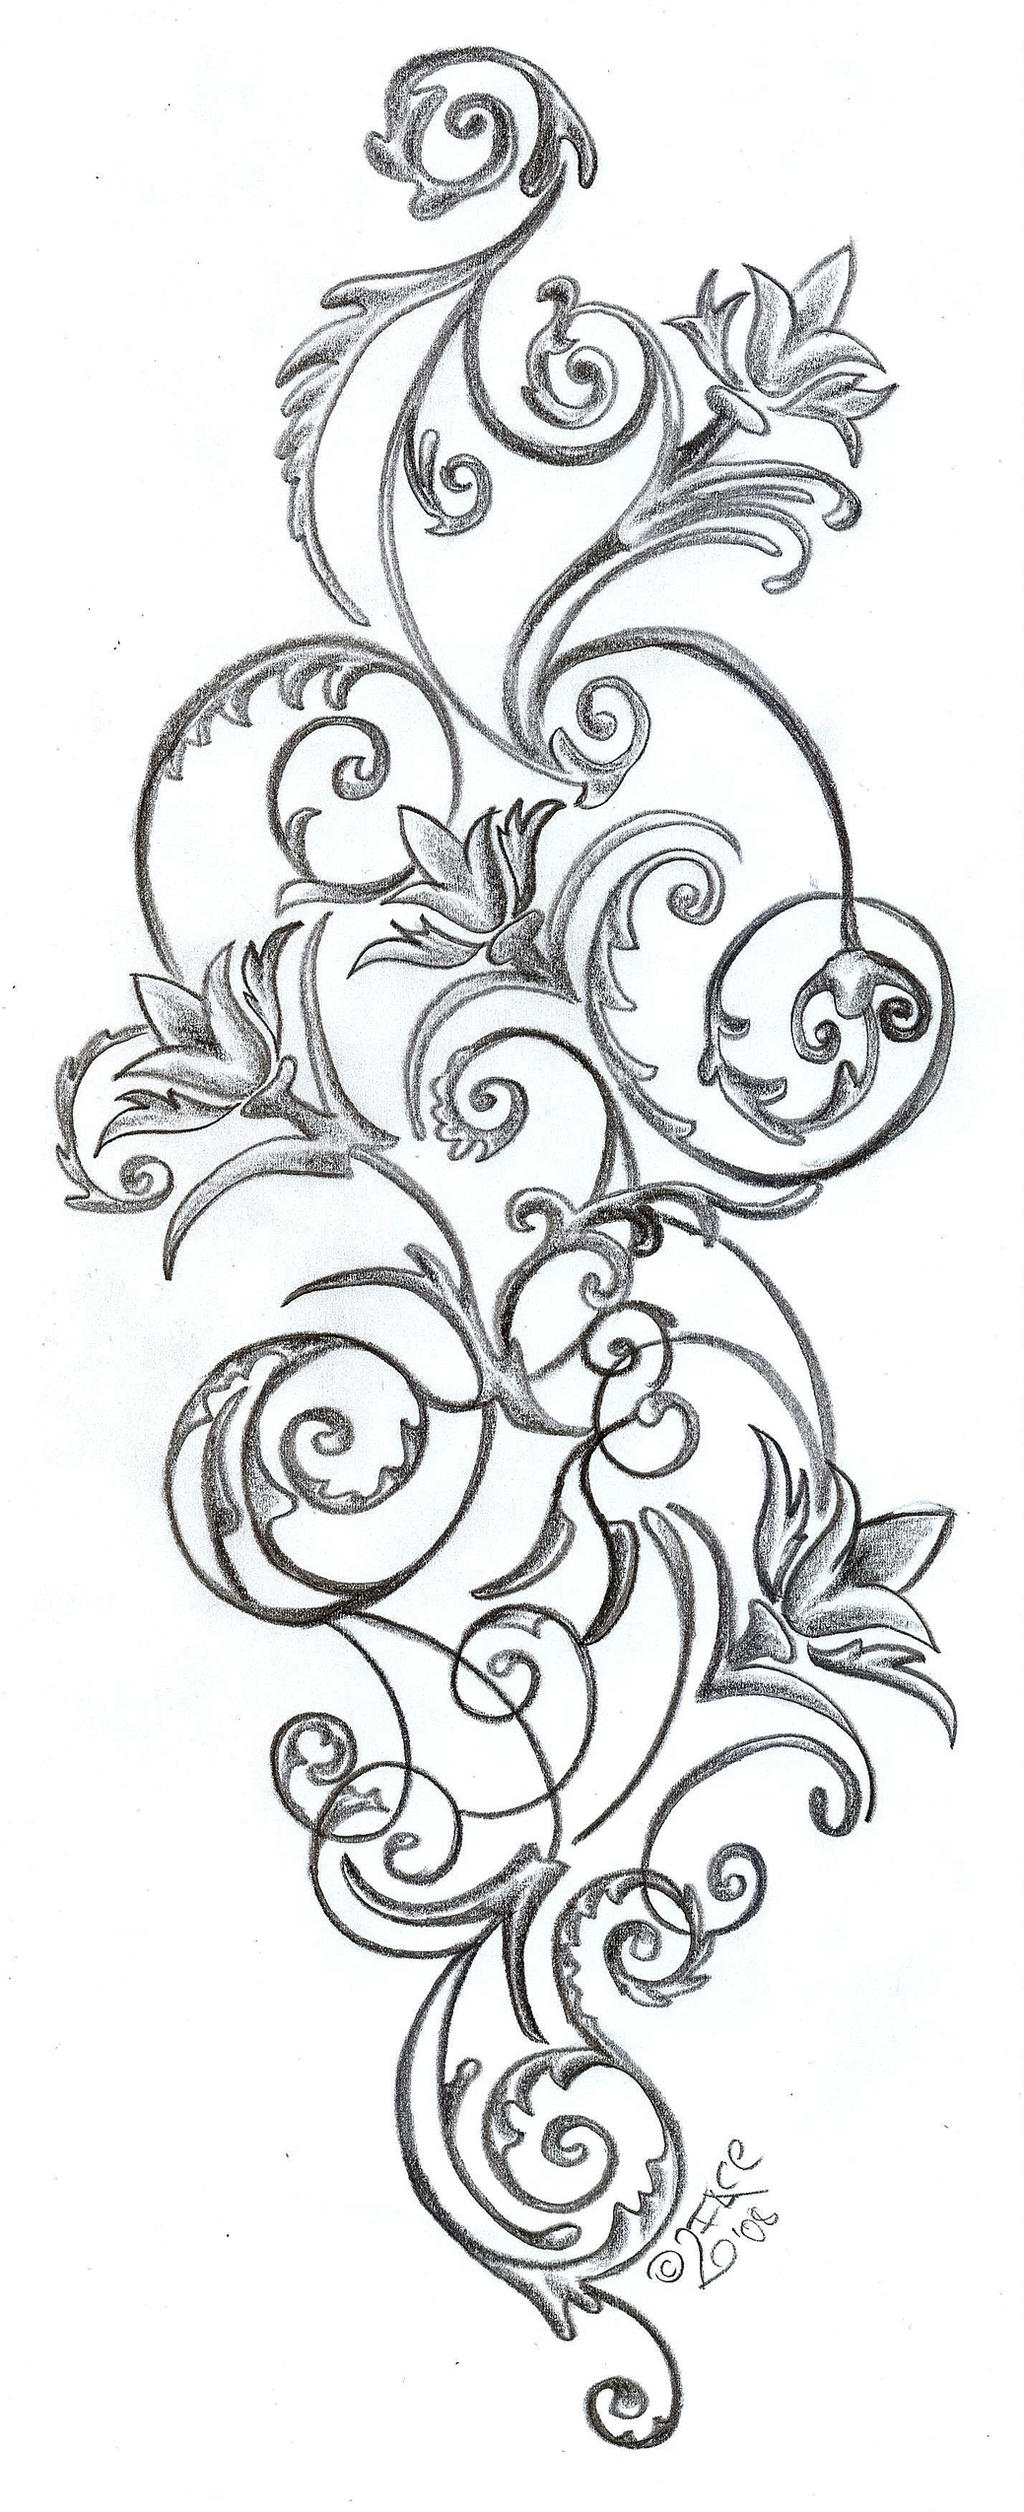 flowers ornamentation design by 2face tattoo on deviantart. Black Bedroom Furniture Sets. Home Design Ideas